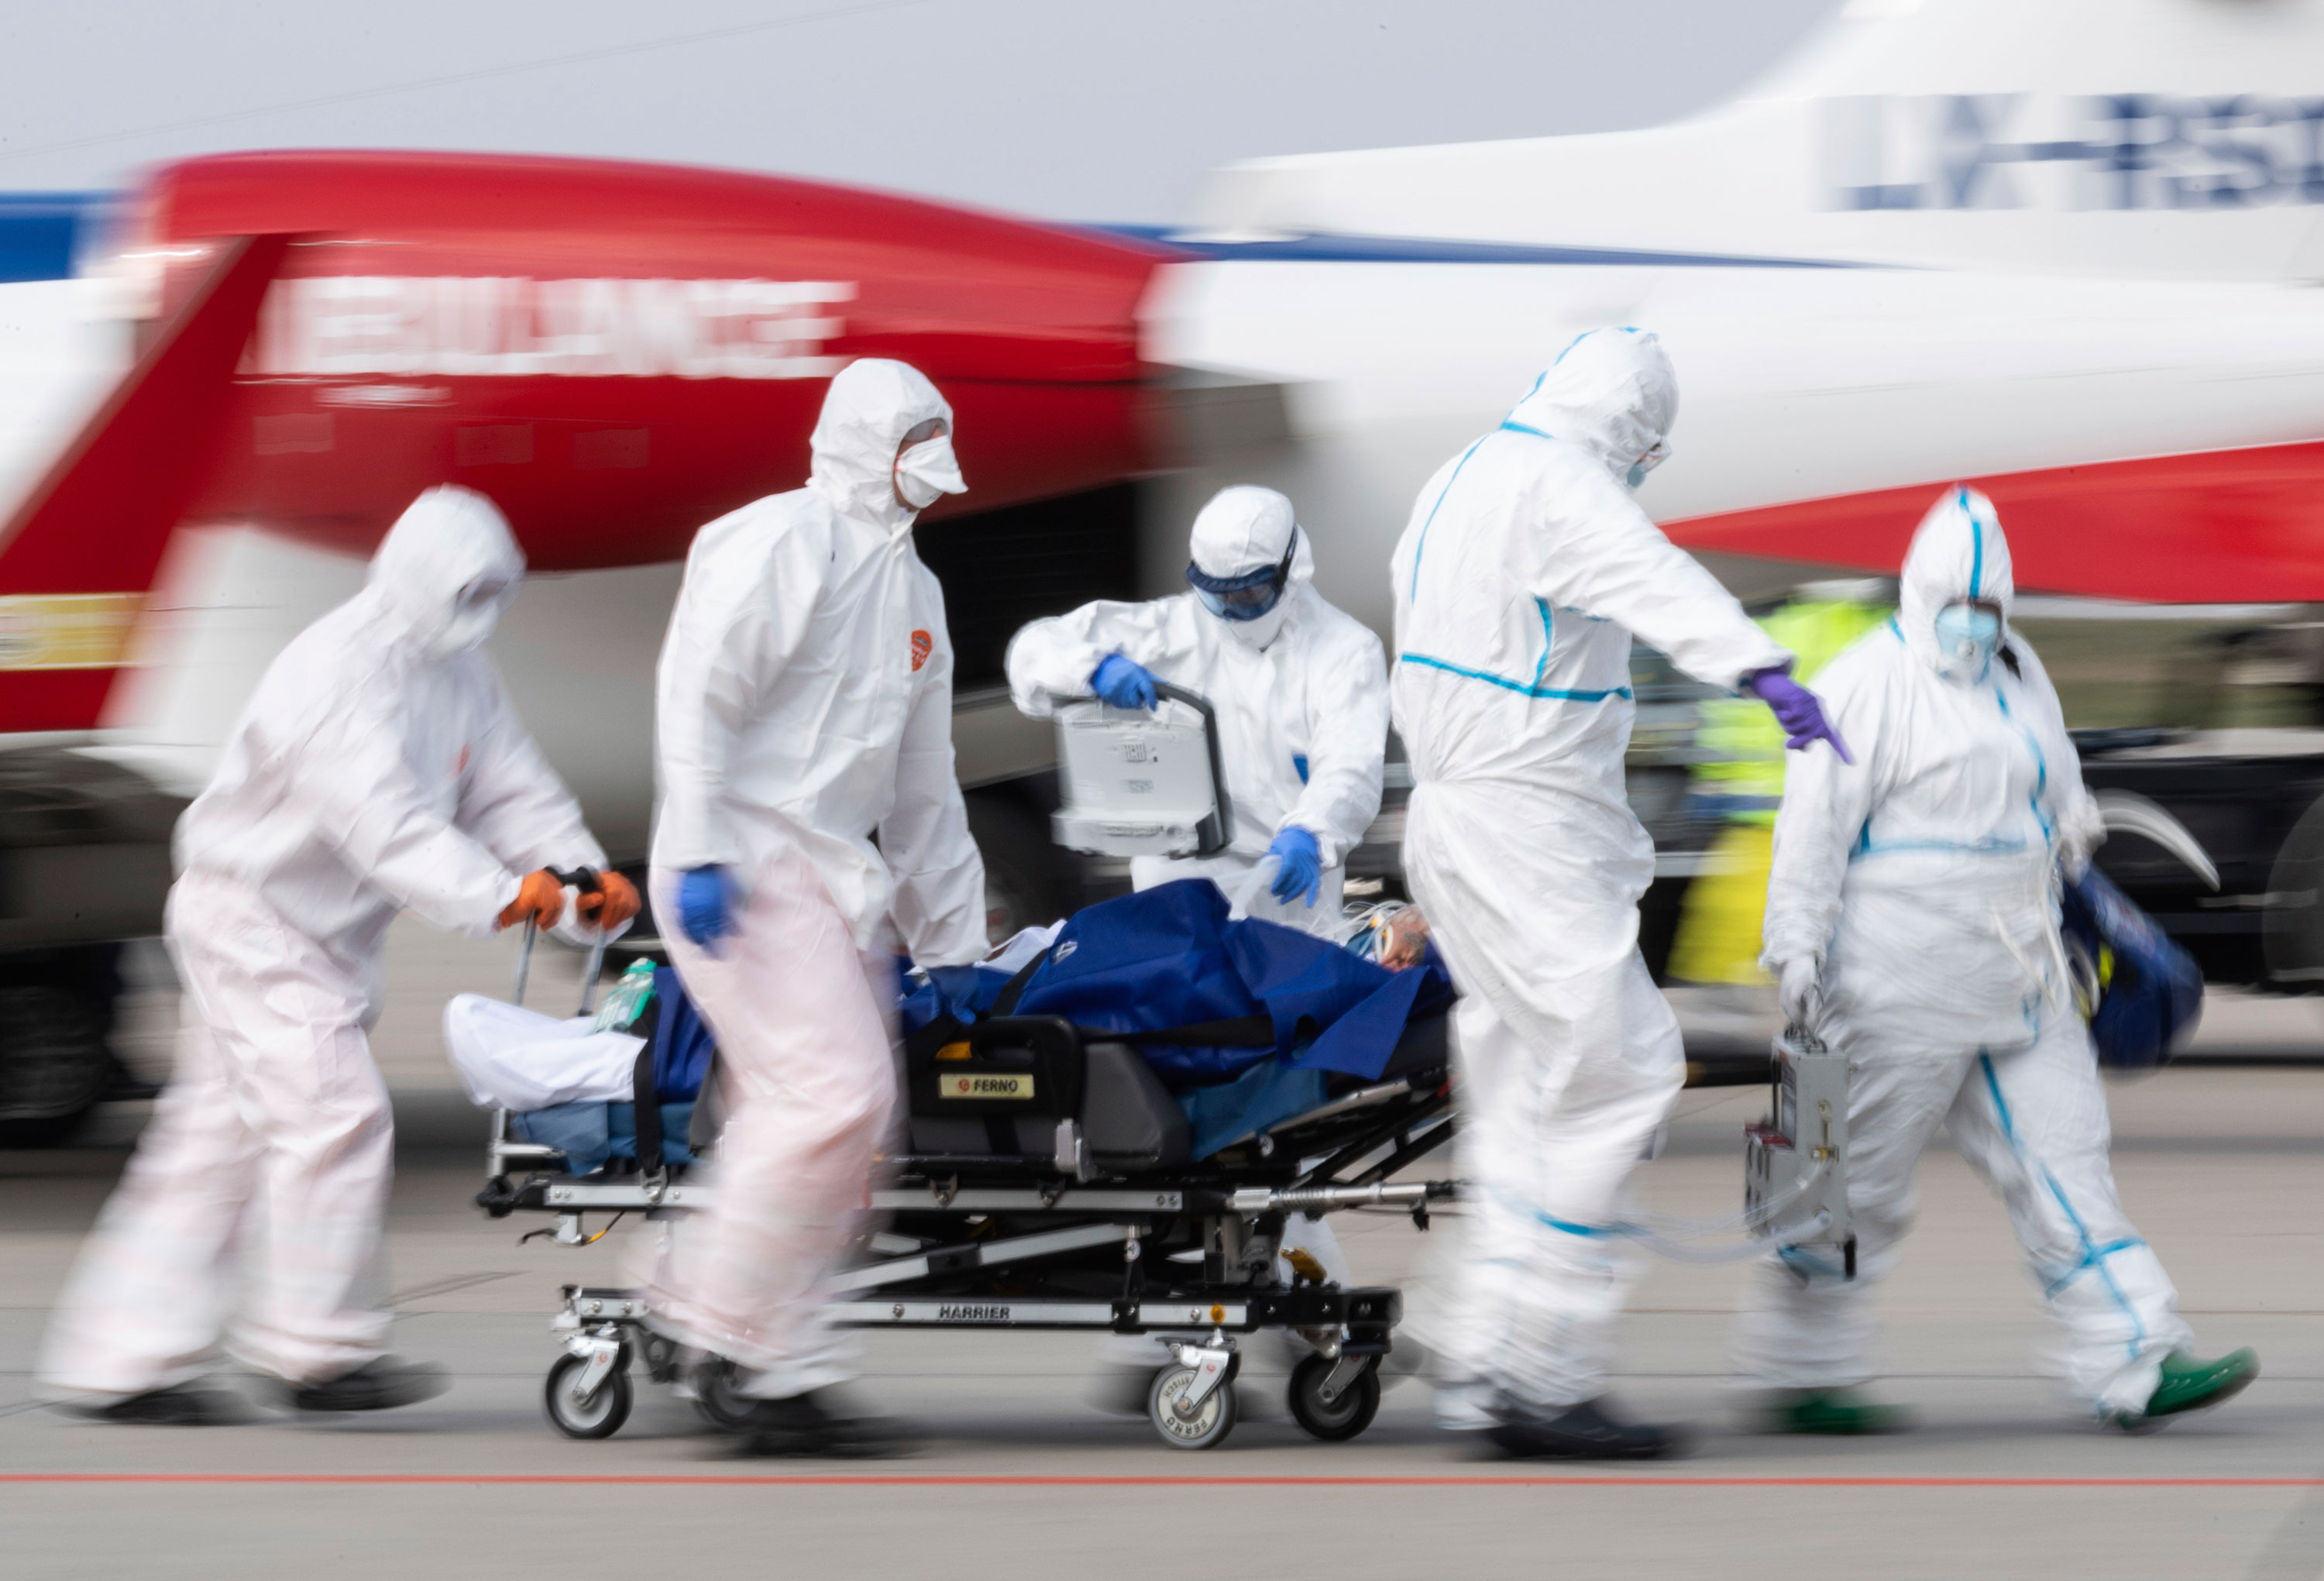 A coronavirus patient is transported from an ambulance plane after landing at Dresden International Airport in Dresden, Germany, on April 4.